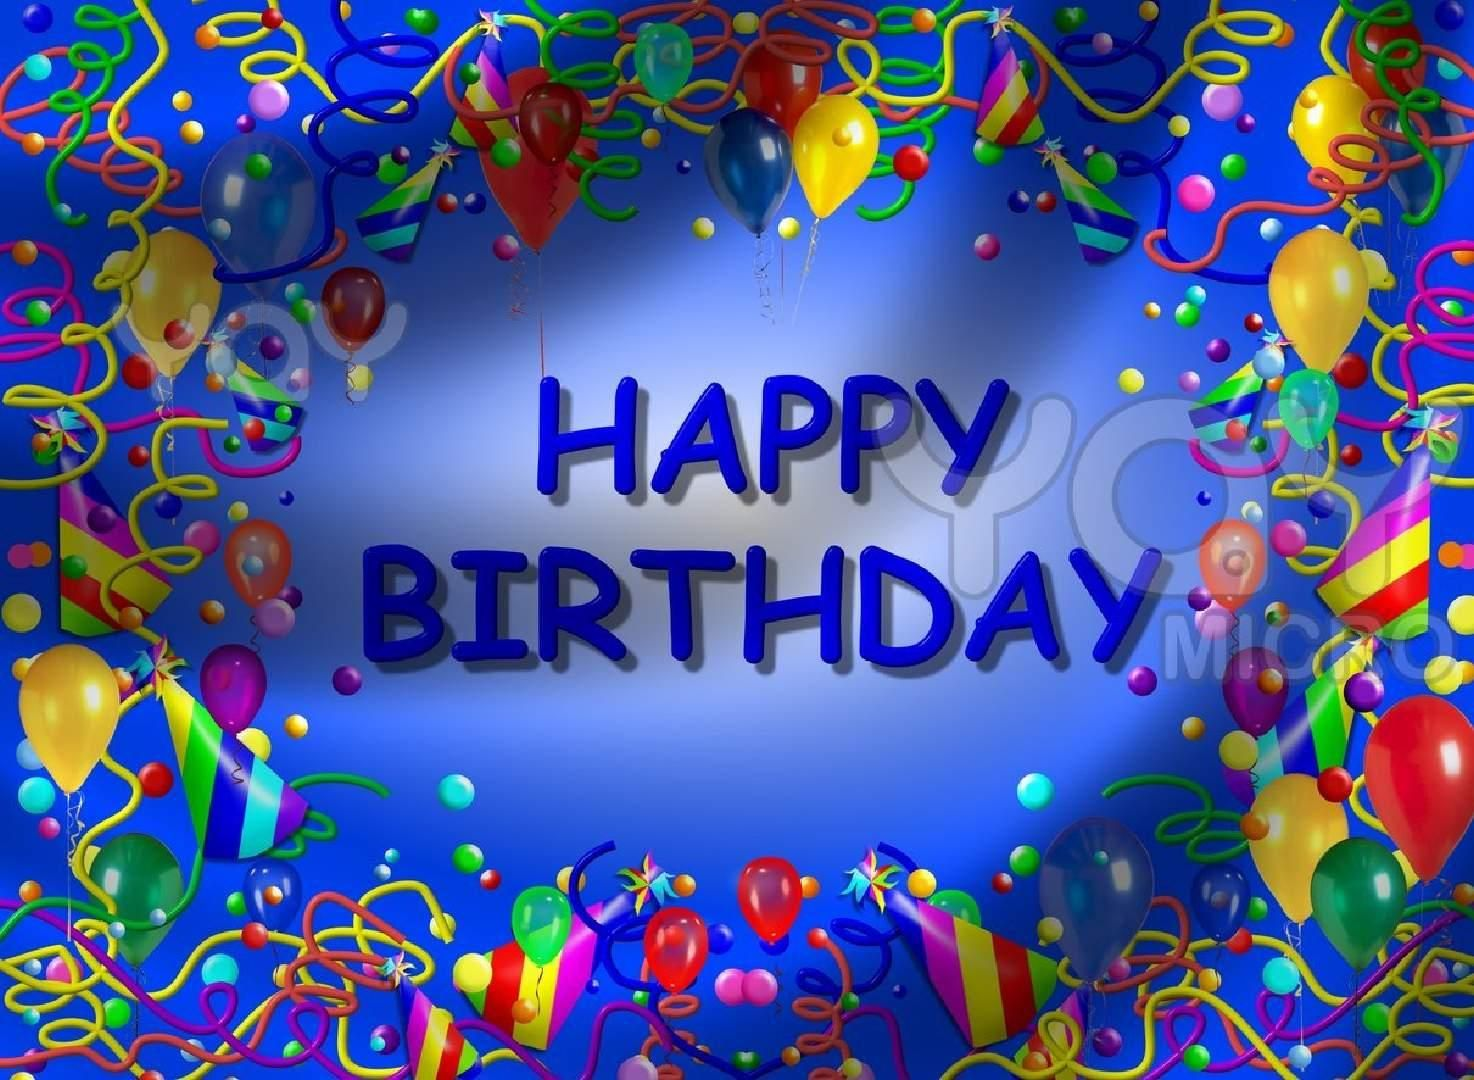 free happy birthday hd image - Free Large Images | Misc ...